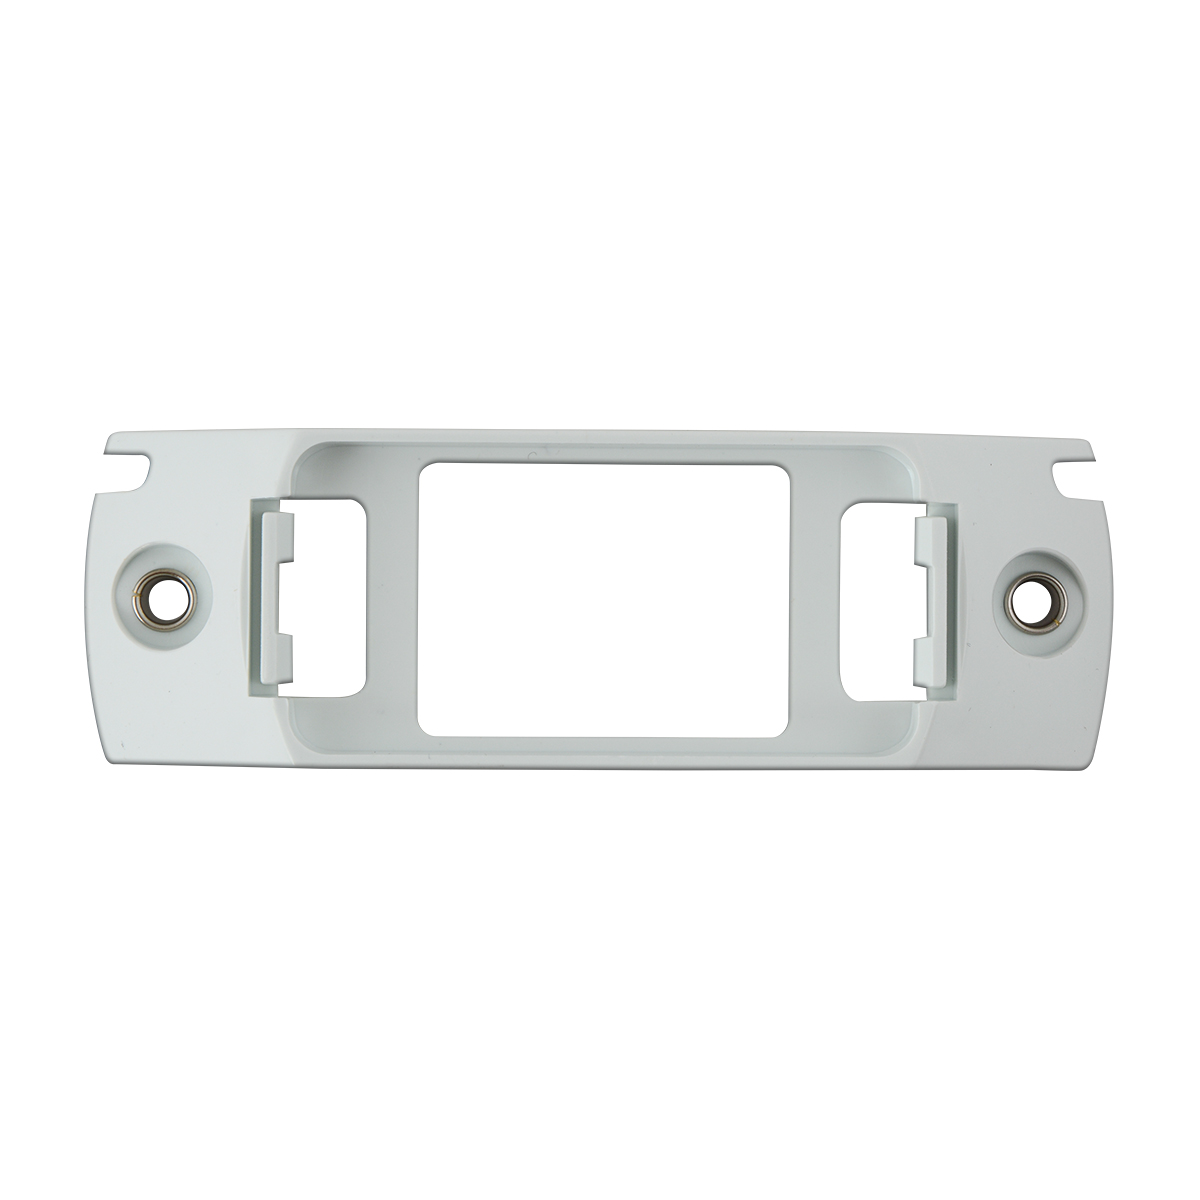 87679 Adapter Mount Rail Style Bracket for Small Rectangular Light